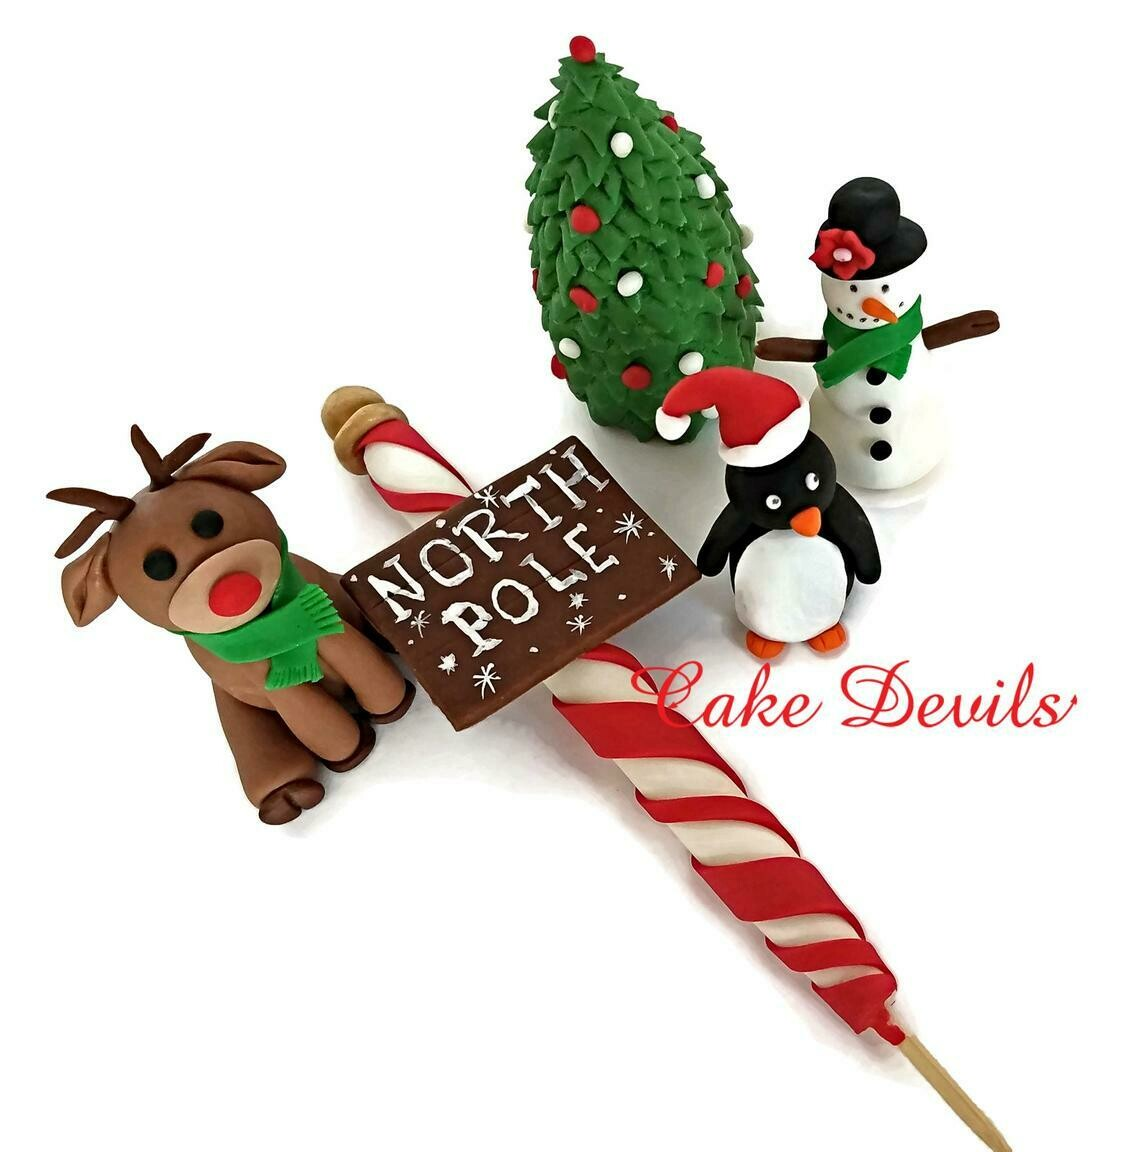 North Pole Holiday Cake Toppers, Fondant Christmas Decorations